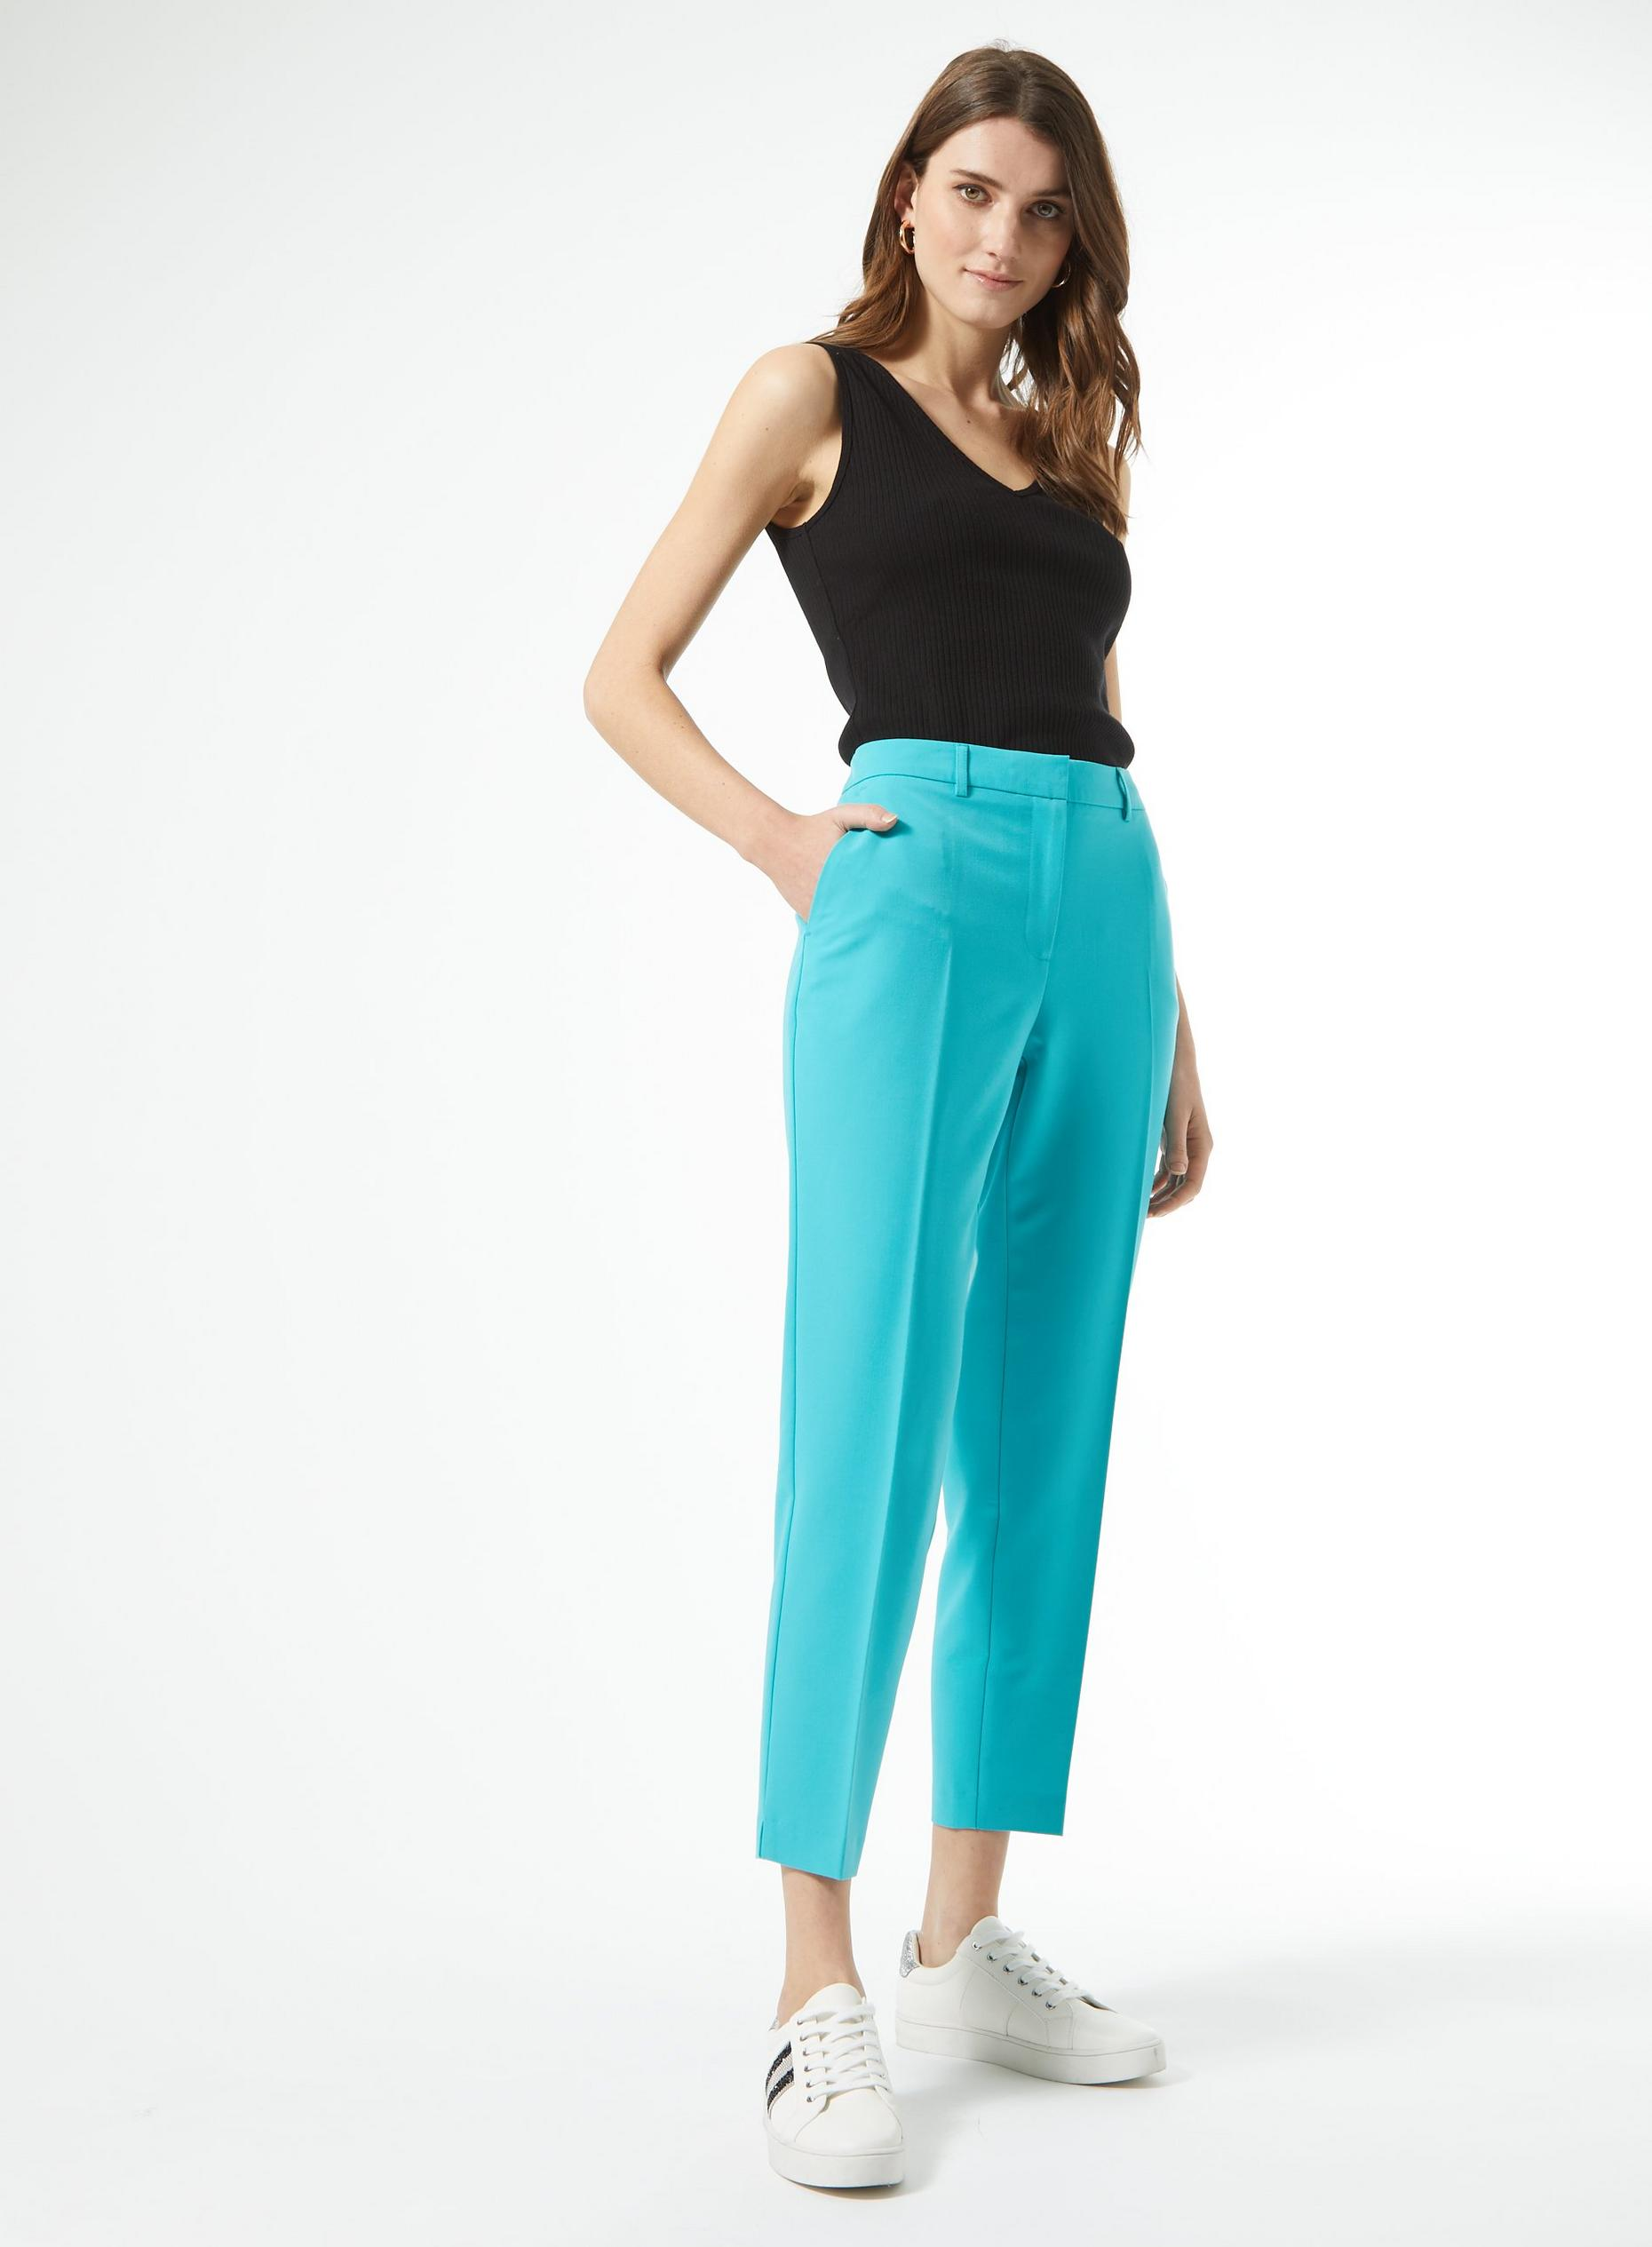 Turquoise Ankle Grazer Trousers